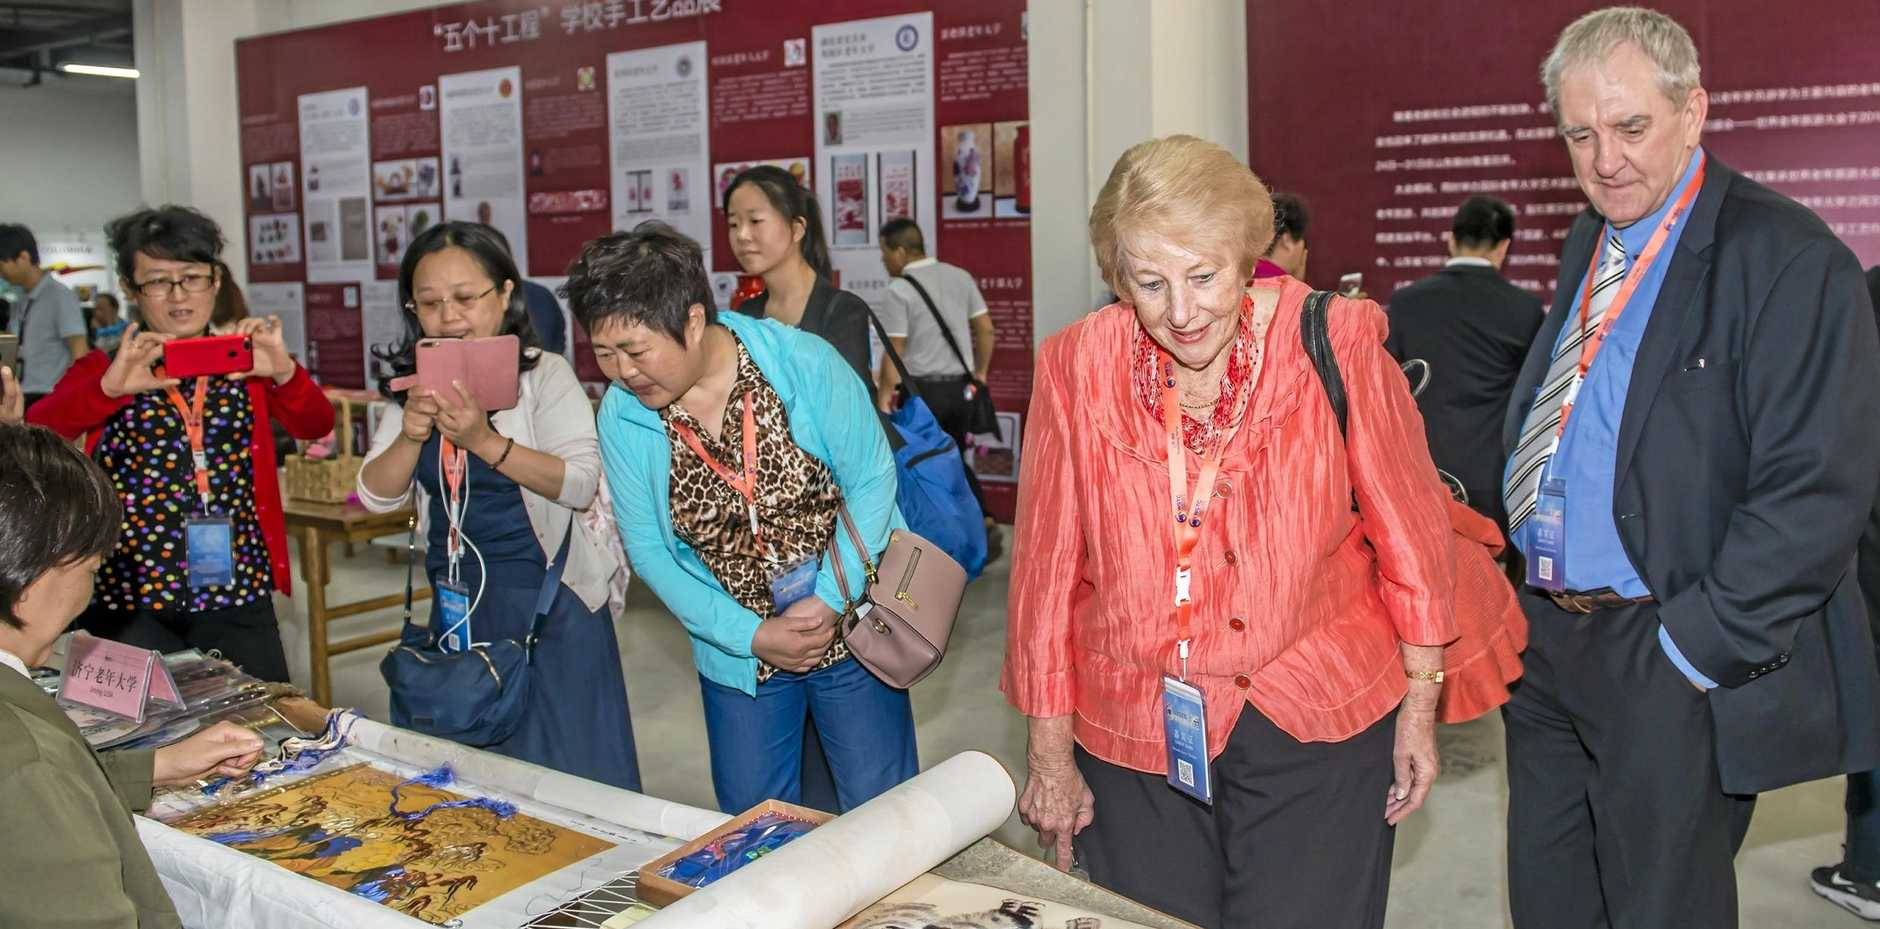 CONNECTING: U3A Toowoomba's Rhonda and David Weston visited U3A Yantai, Shandong Provence Art Class on a study tour after the World Senior Tourism Congress, attended by 400 U3A members.